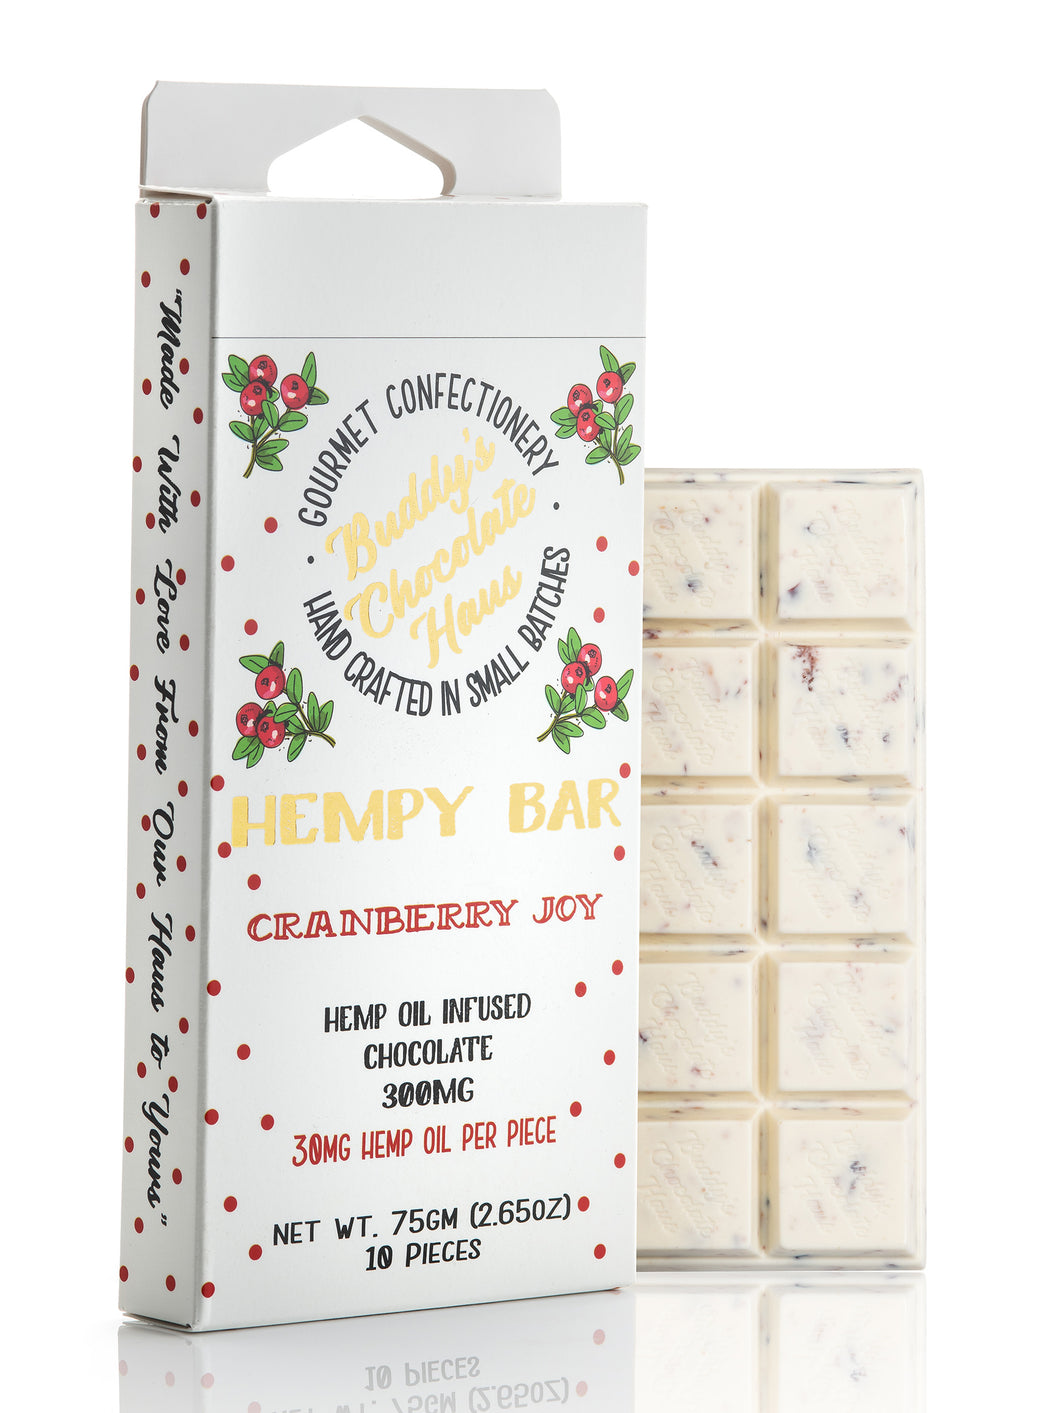 Cranberry Joy Hempy Bar 300mg